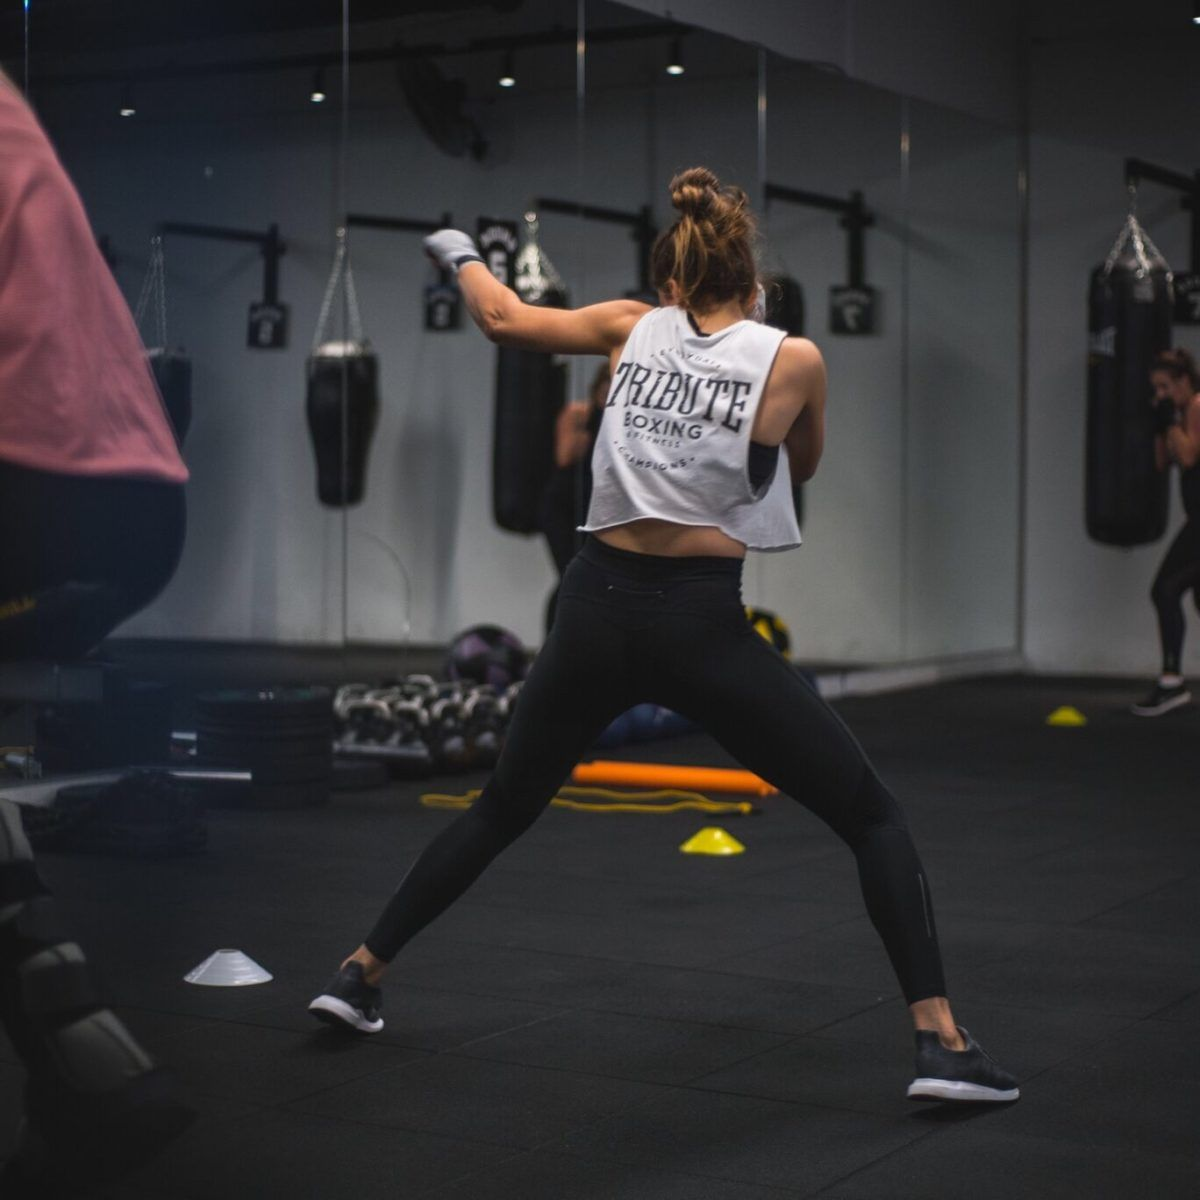 Boxing training, benefits for Muay Thai - FIGHTMAG